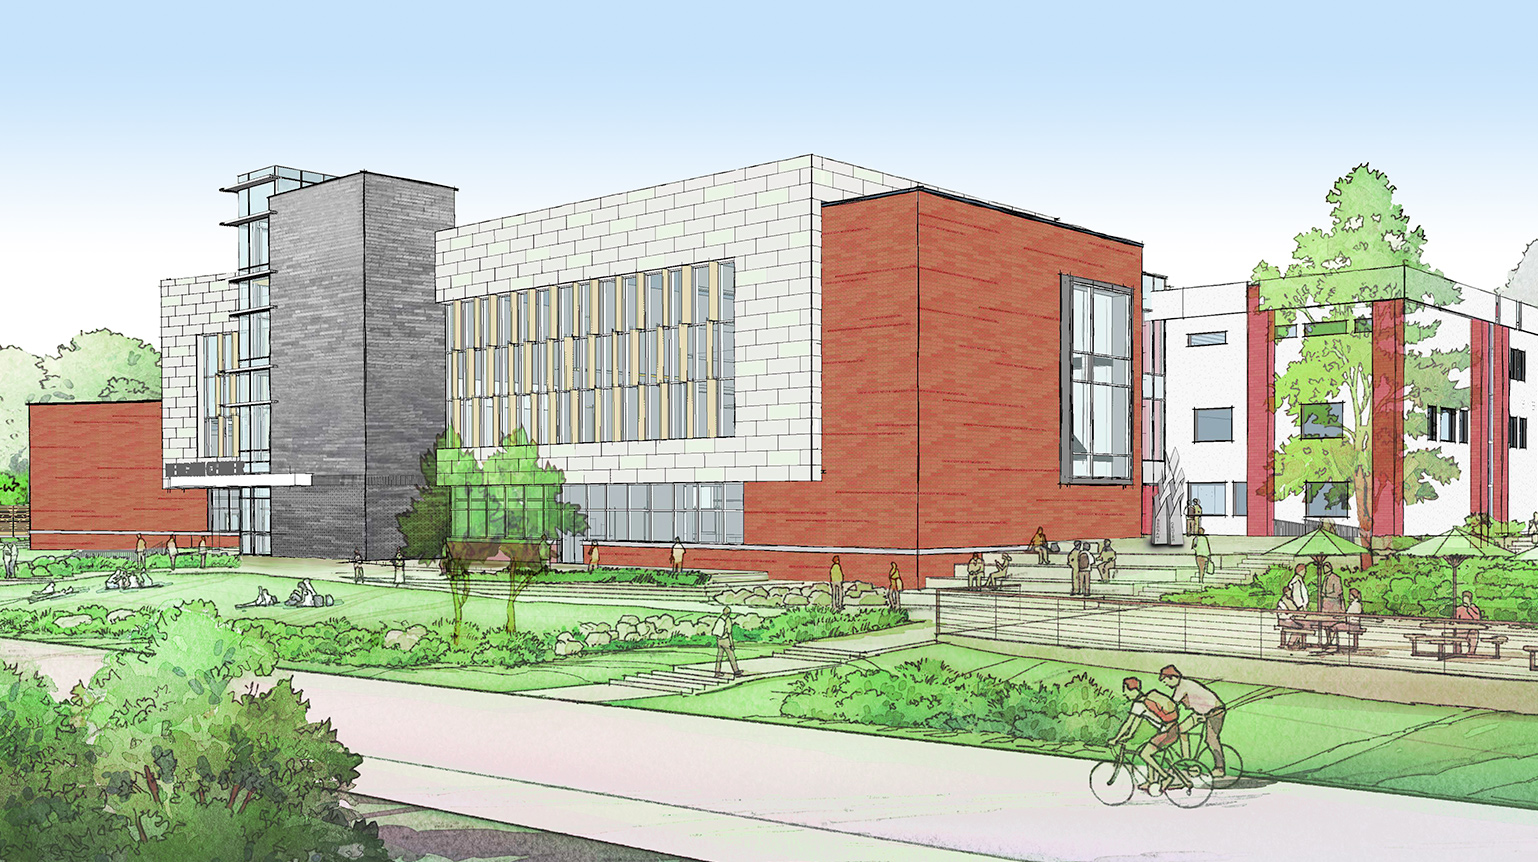 Rendering of the Bergami Center for Science, Technology, and Innovation